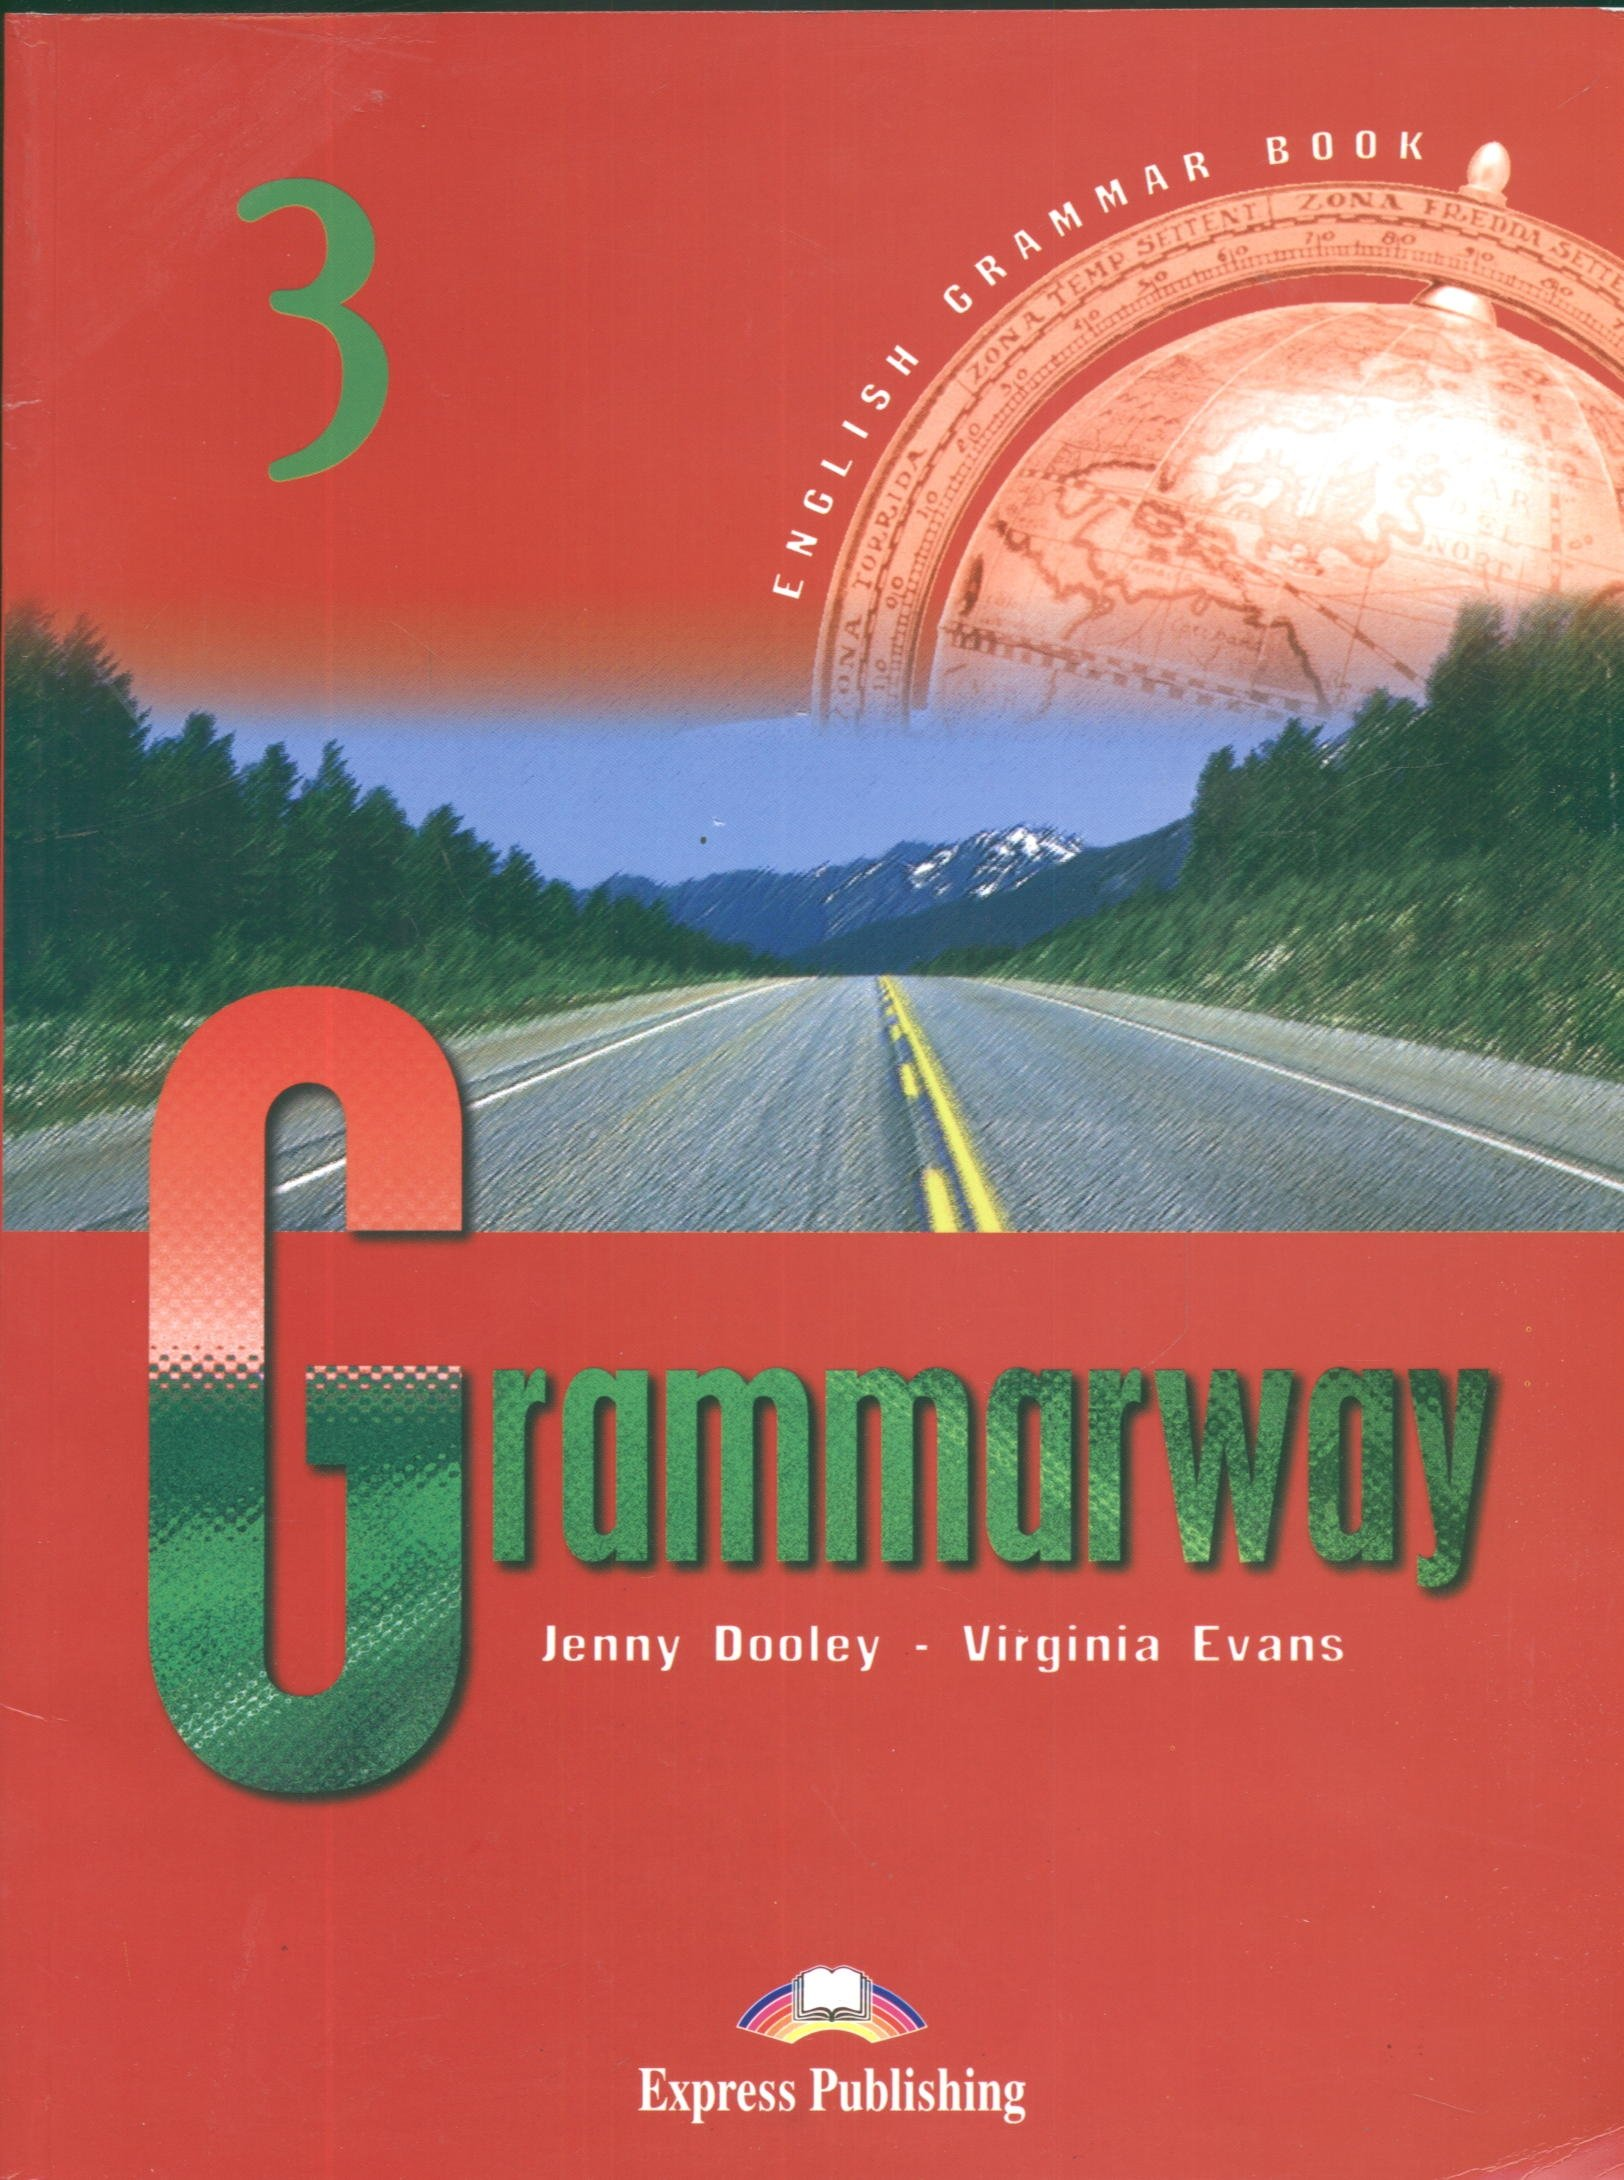 GRAMMARWAY 3 English Grammar Book